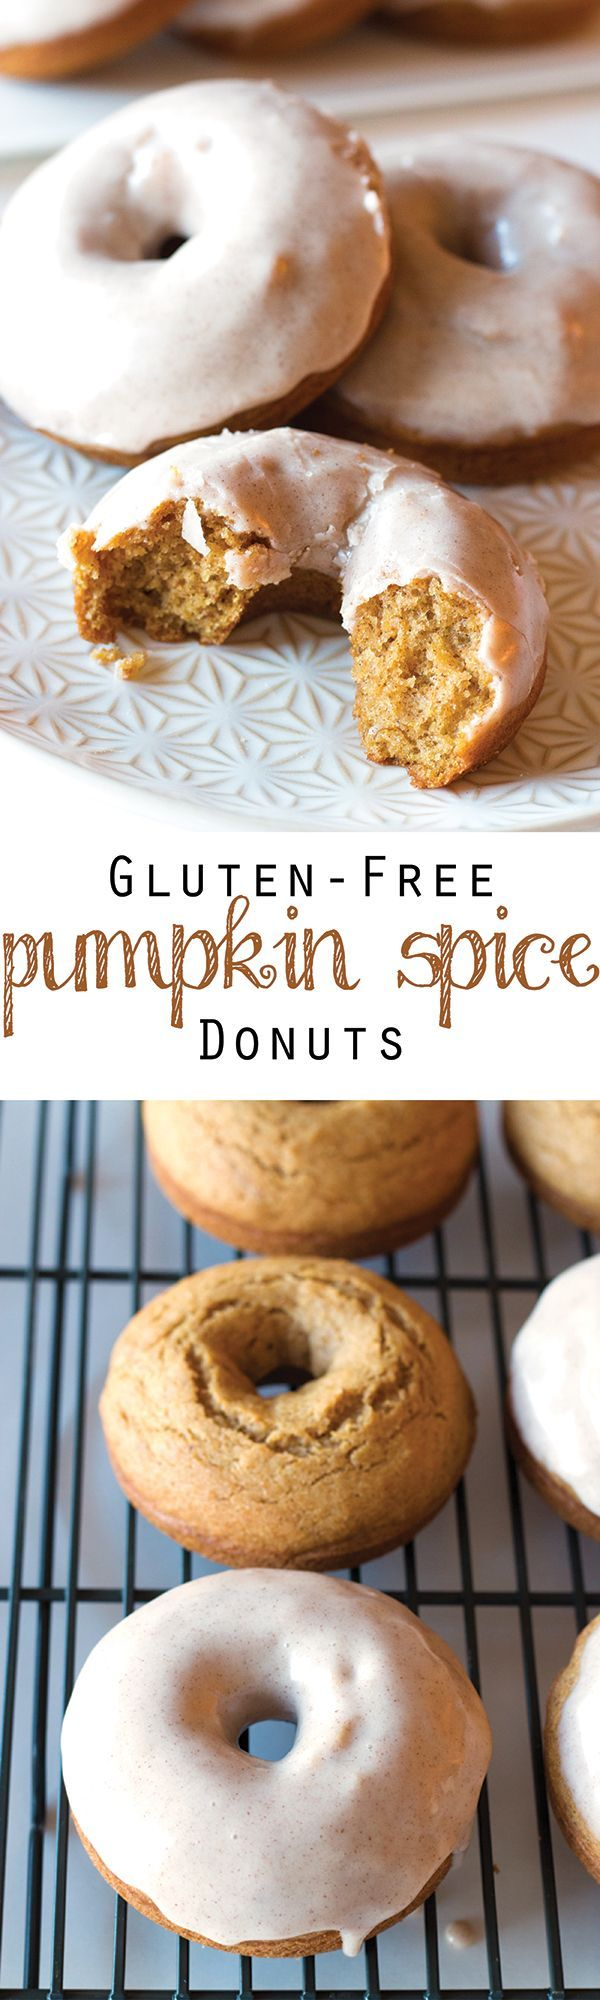 ... Glaze, these Gluten-Free Pumpkin Spice Donuts are the ultimate fall